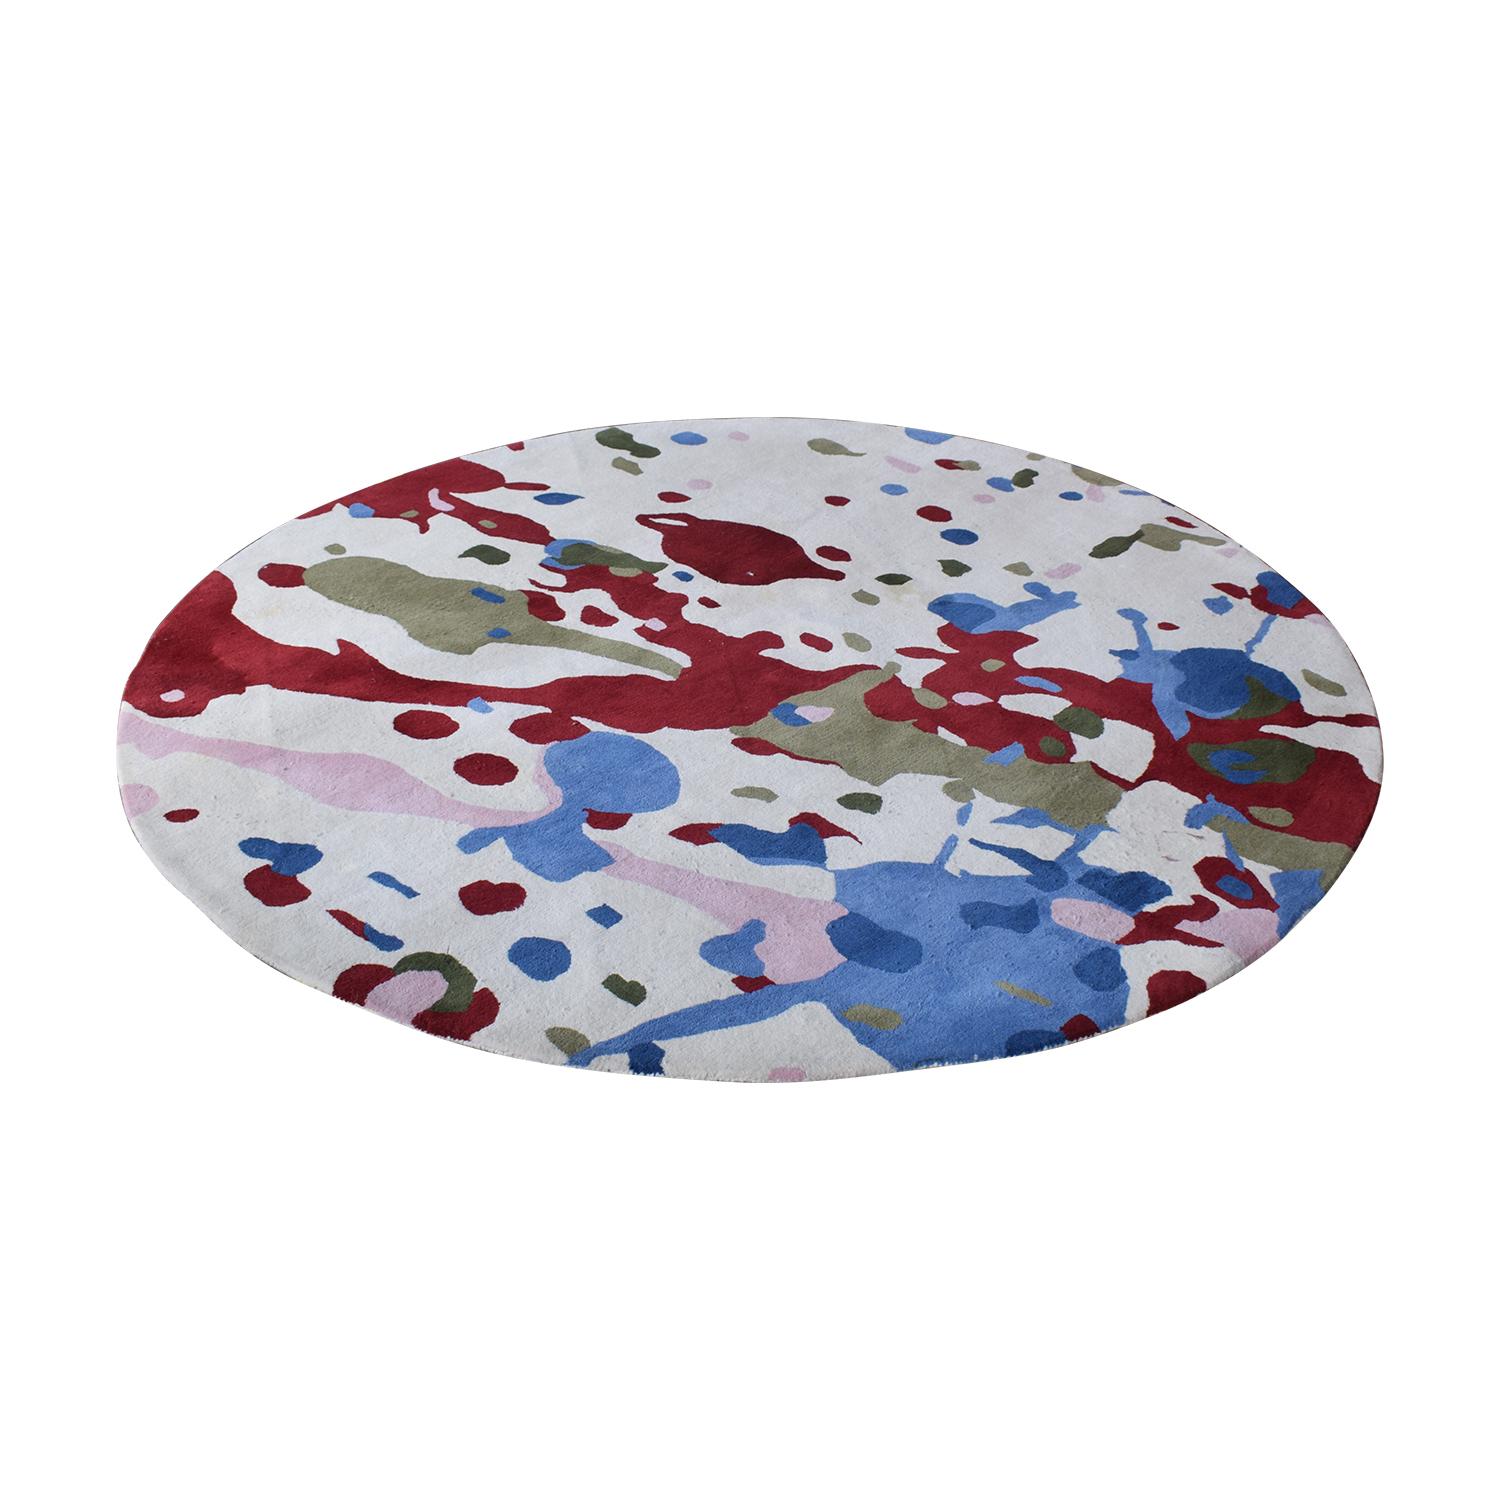 Obeetee Obeetee Round Multi-Colored Hand Tufted Rug coupon